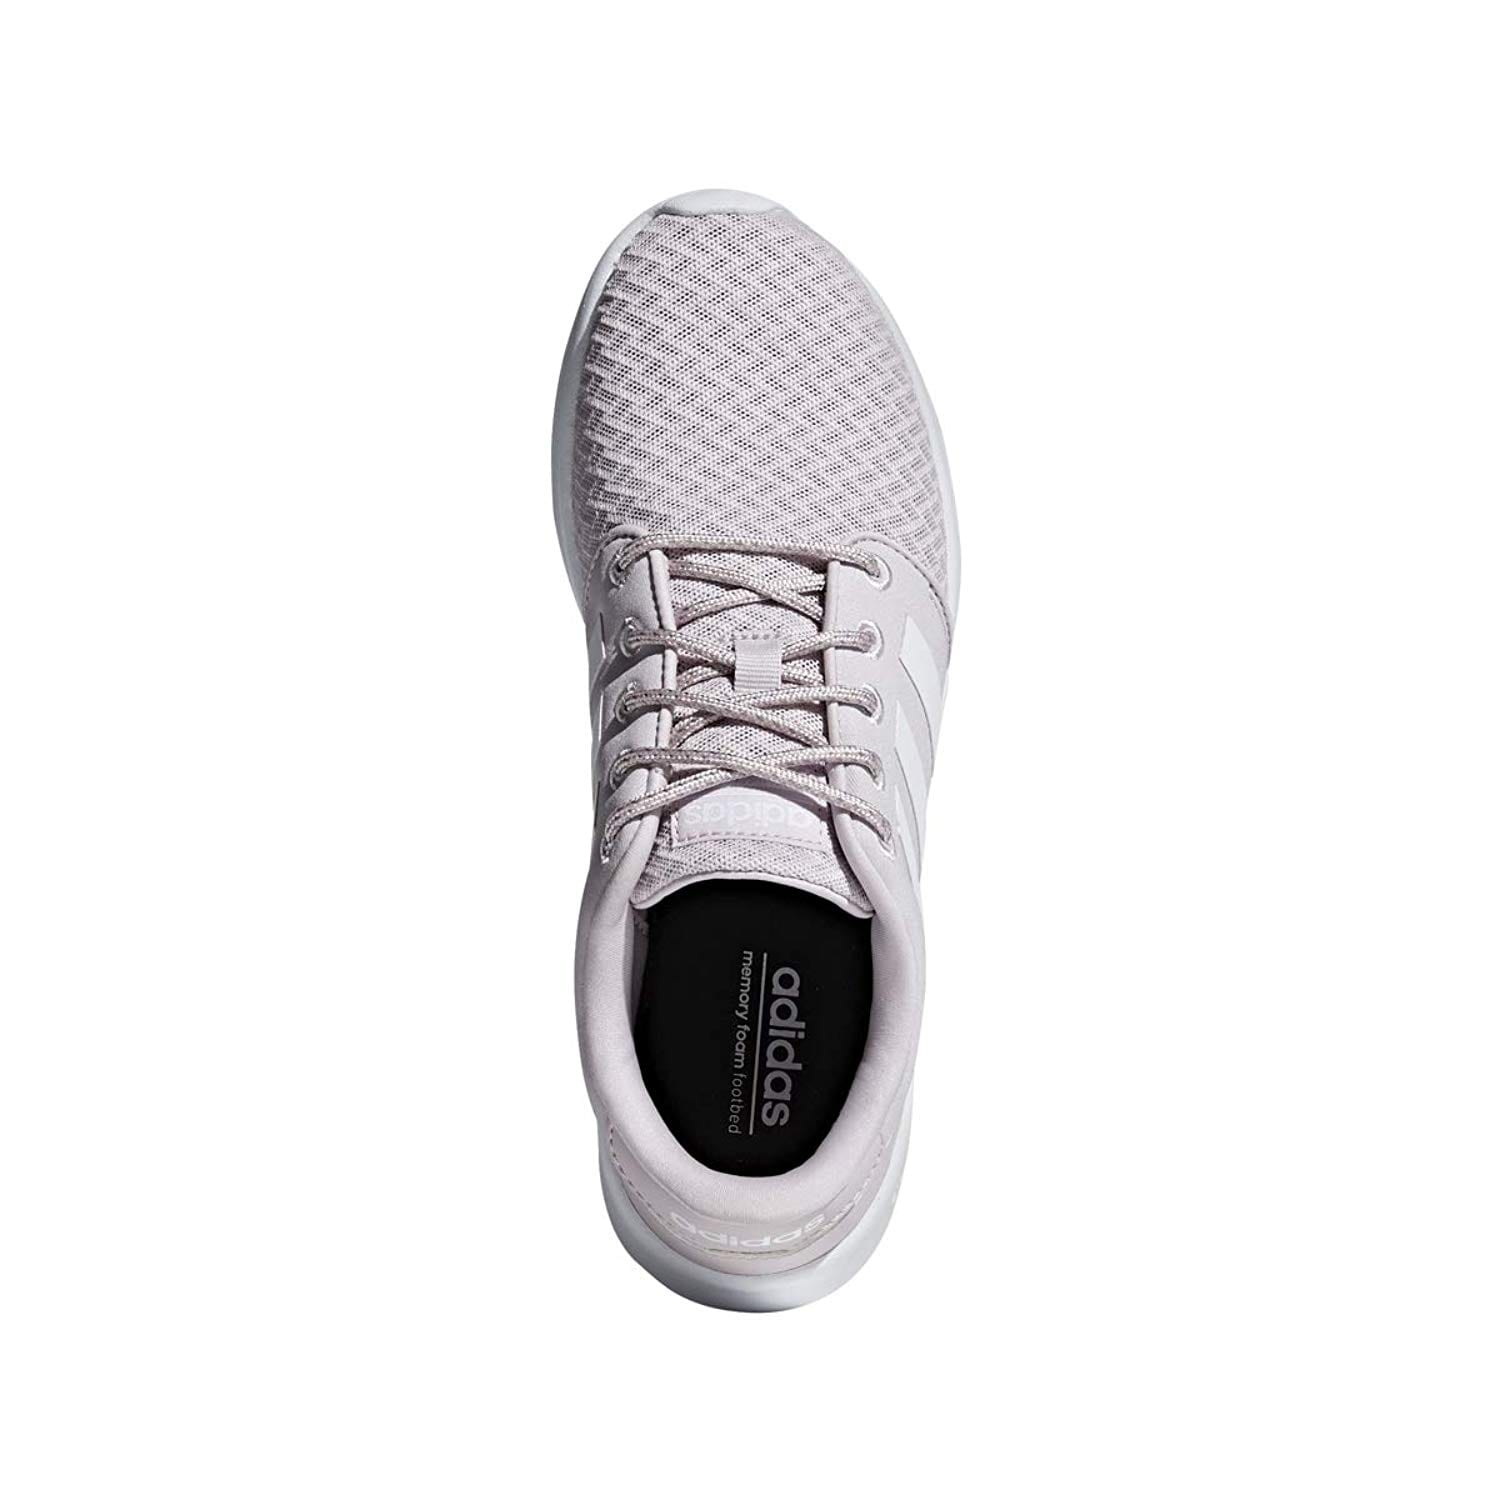 0727b6c4a31 Shop Adidas Cloudfoam Qt Racer Shoe Women s Running 8 Ice Purple-White-Light  Granite - Free Shipping Today - Overstock - 25879957